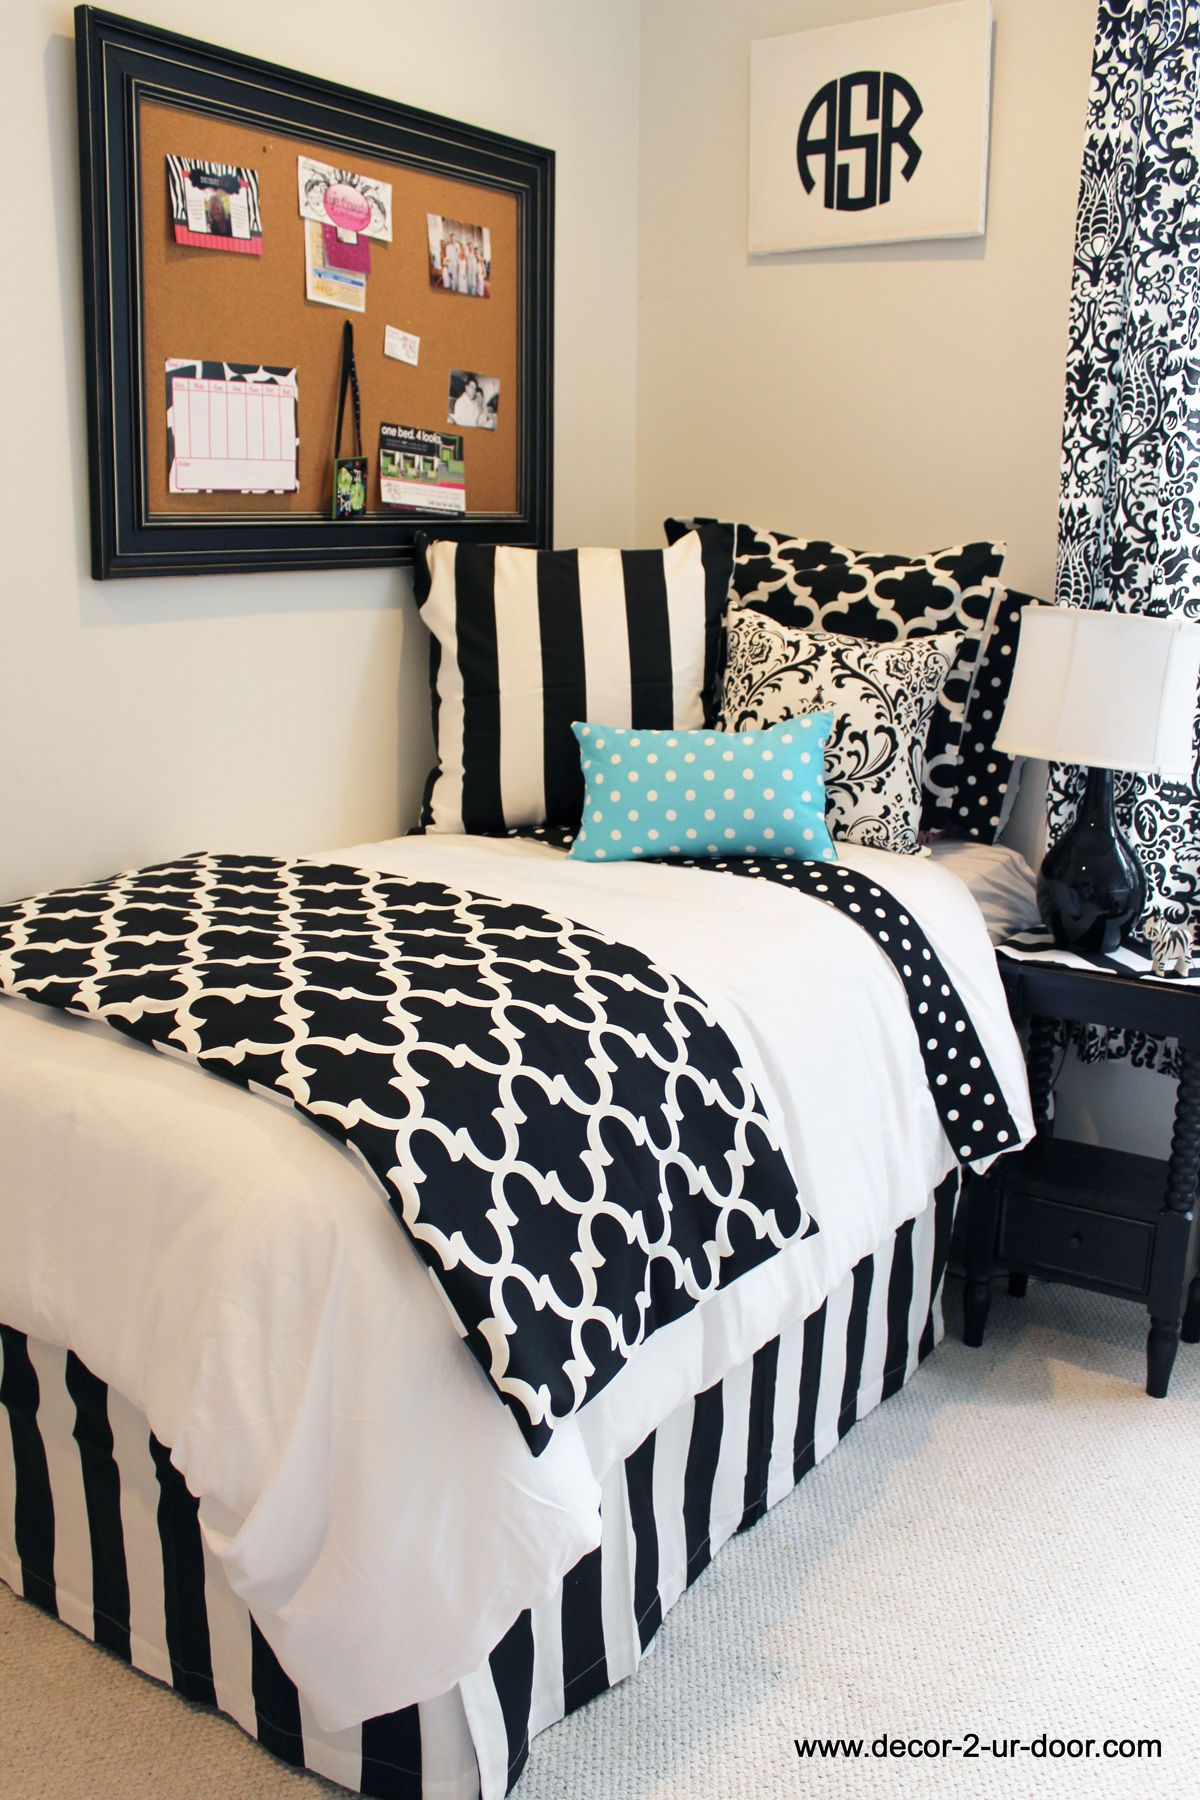 Inspiration Gallery for Bedroom Decor  Bedding  Dorm Room Teen Girl Apartment and Home